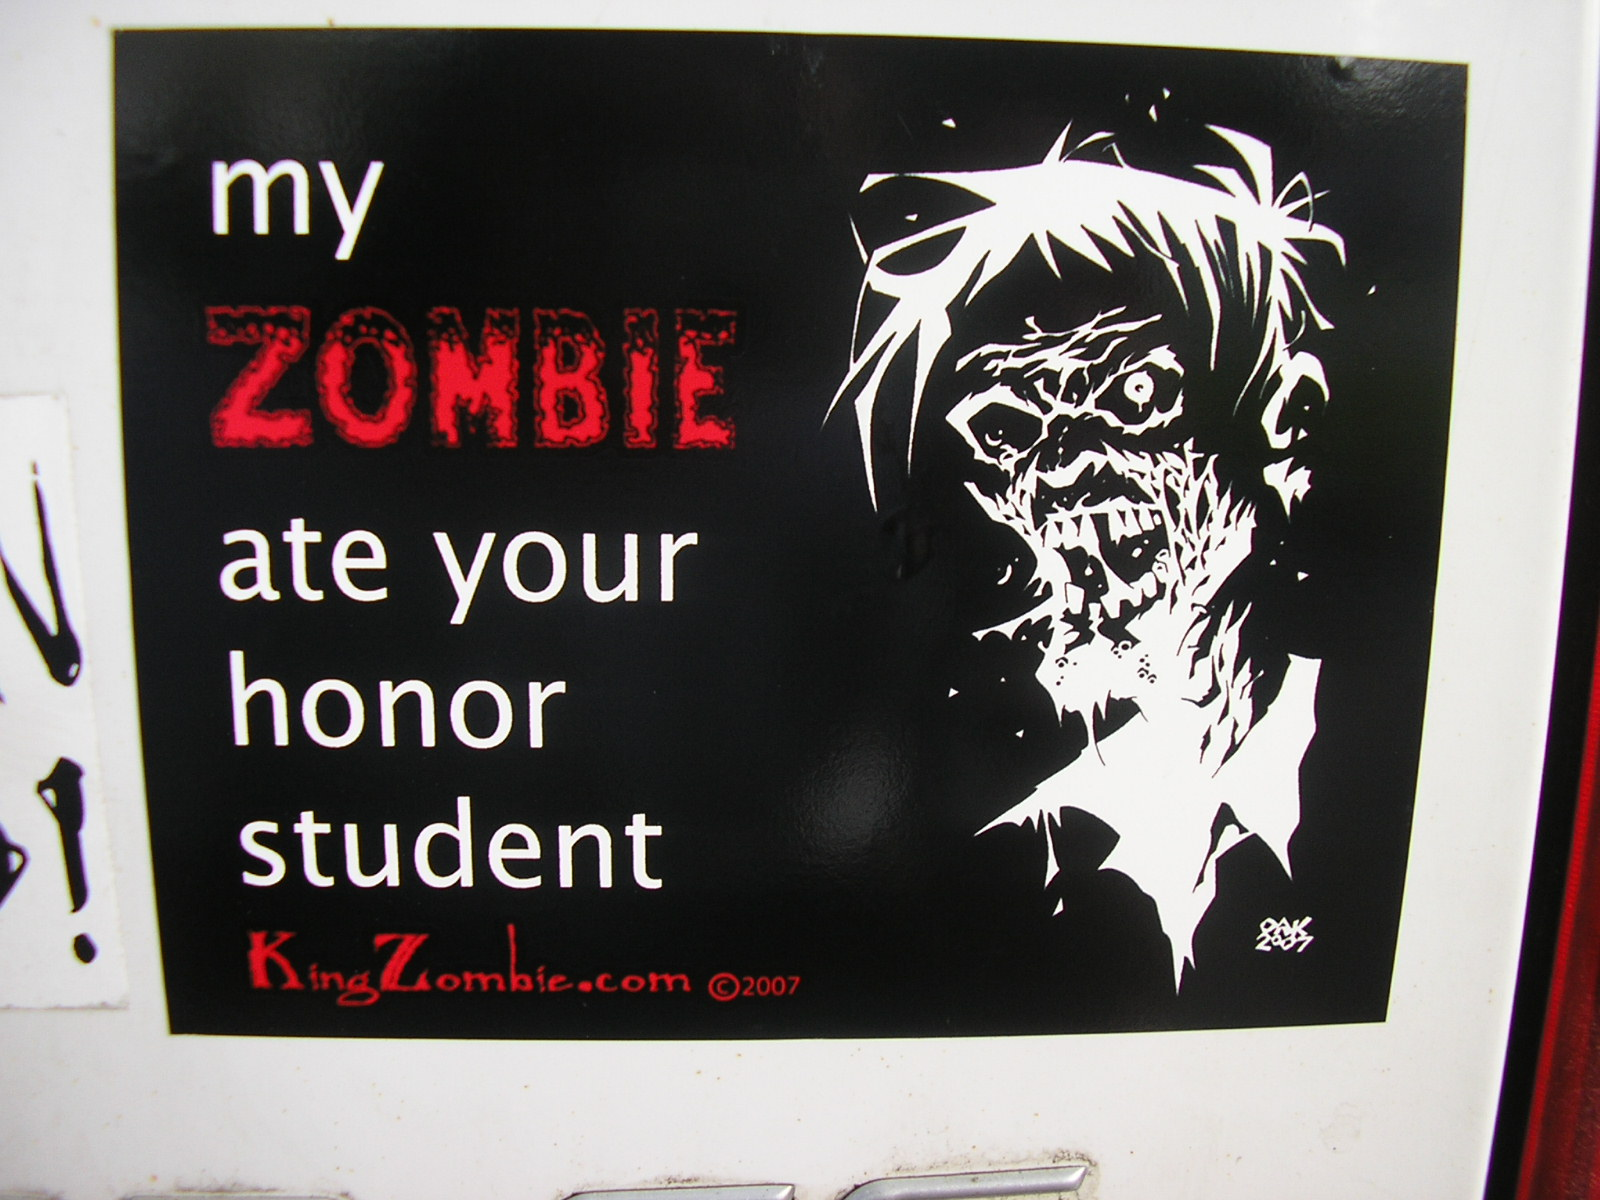 My Zombie Ate Your Honor Student 5 Pack!